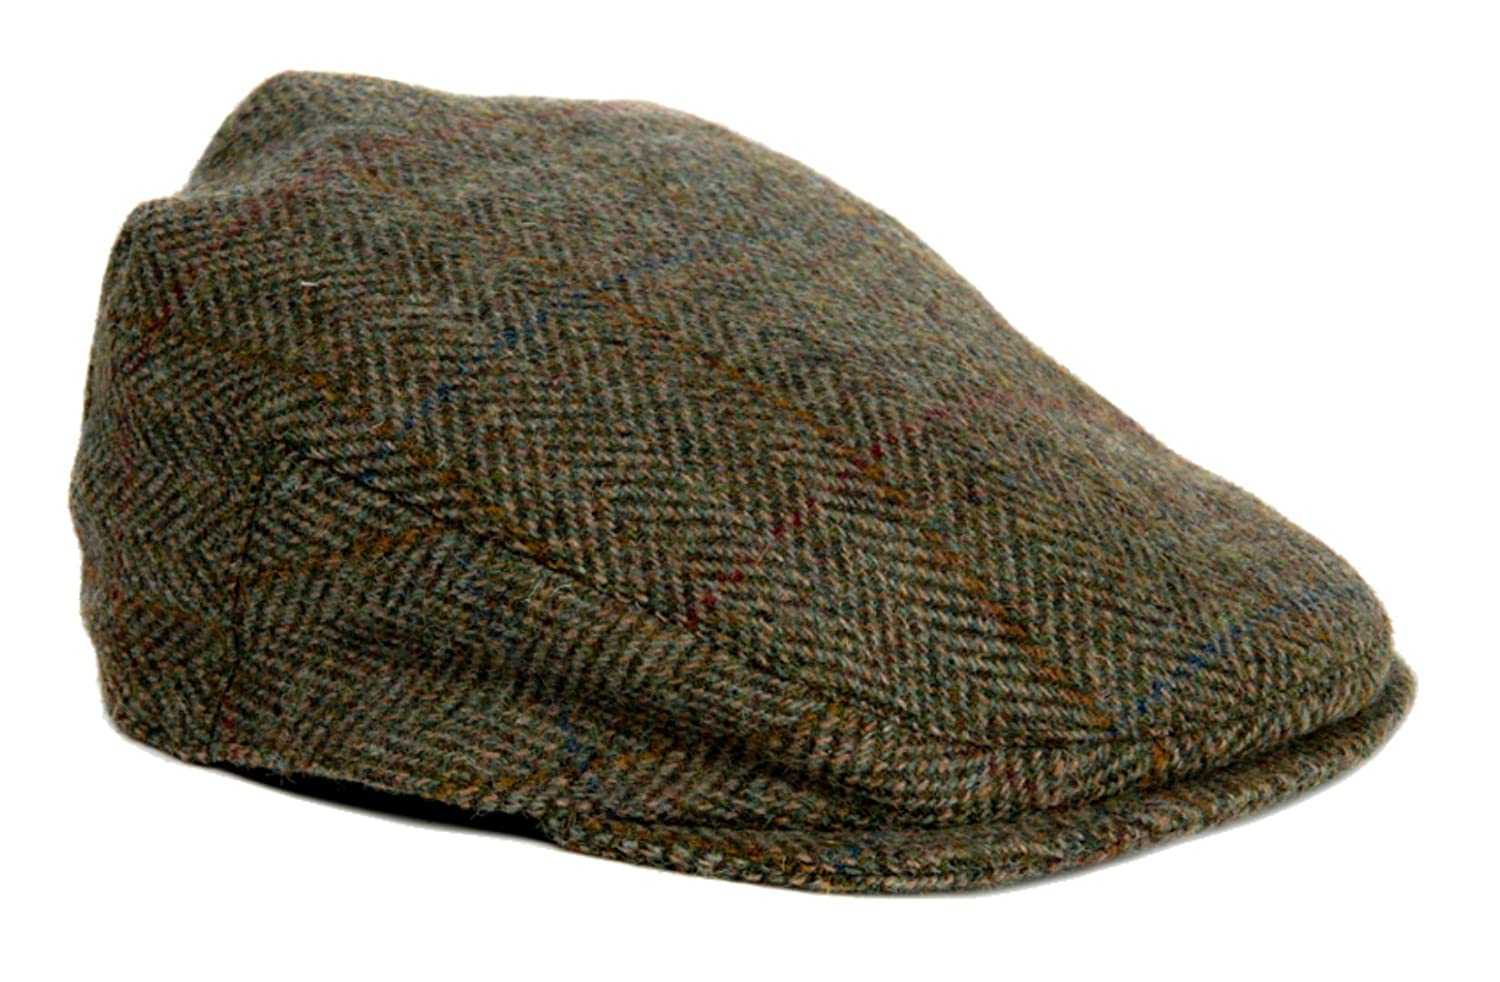 Maccessori Verde Herringbone Harris Tweed Country Gorra Plana ...